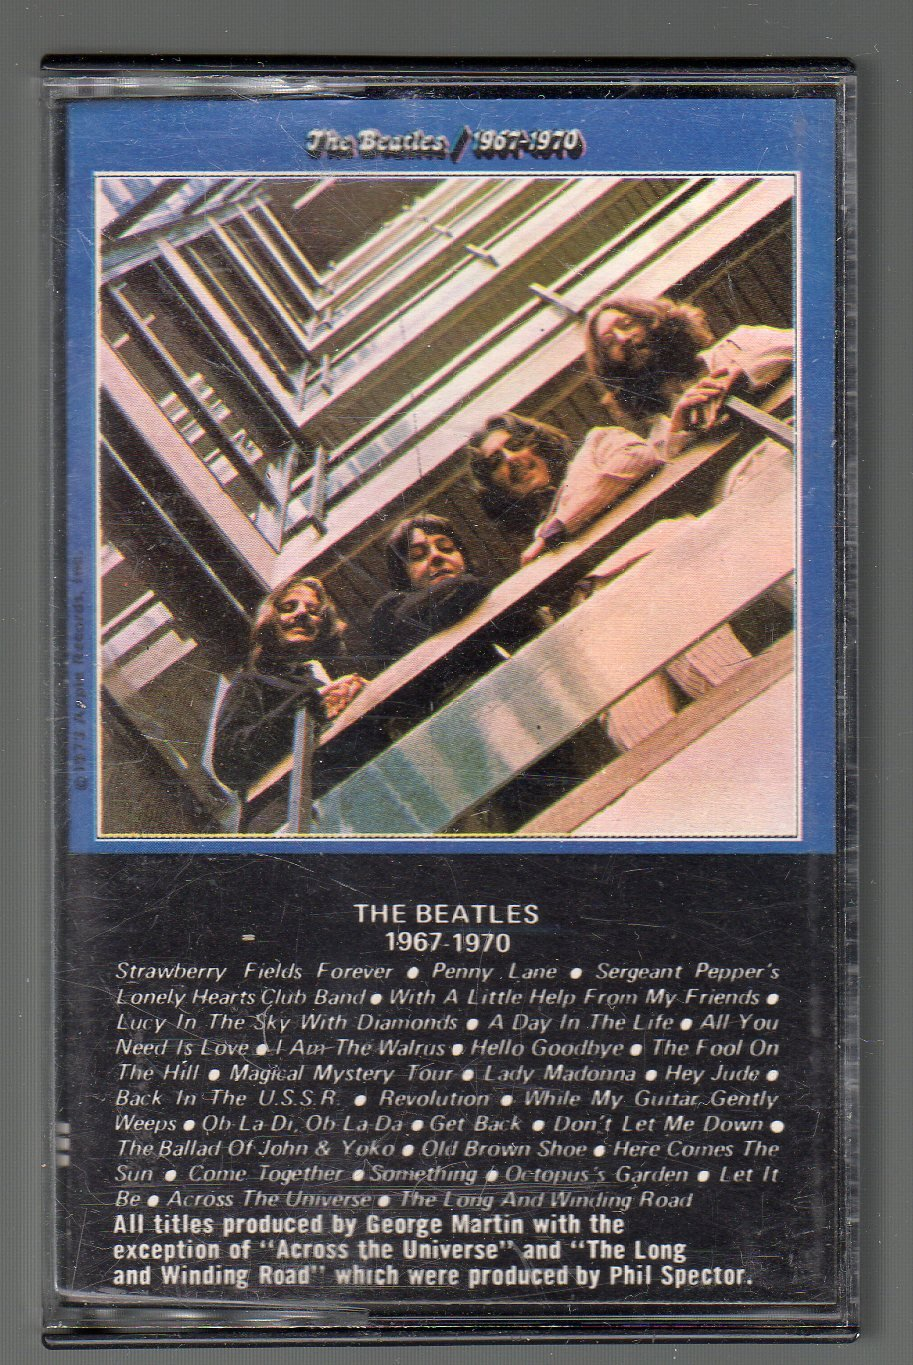 The Beatles - The Beatles 1967-1970 SOLD Cassette Tape